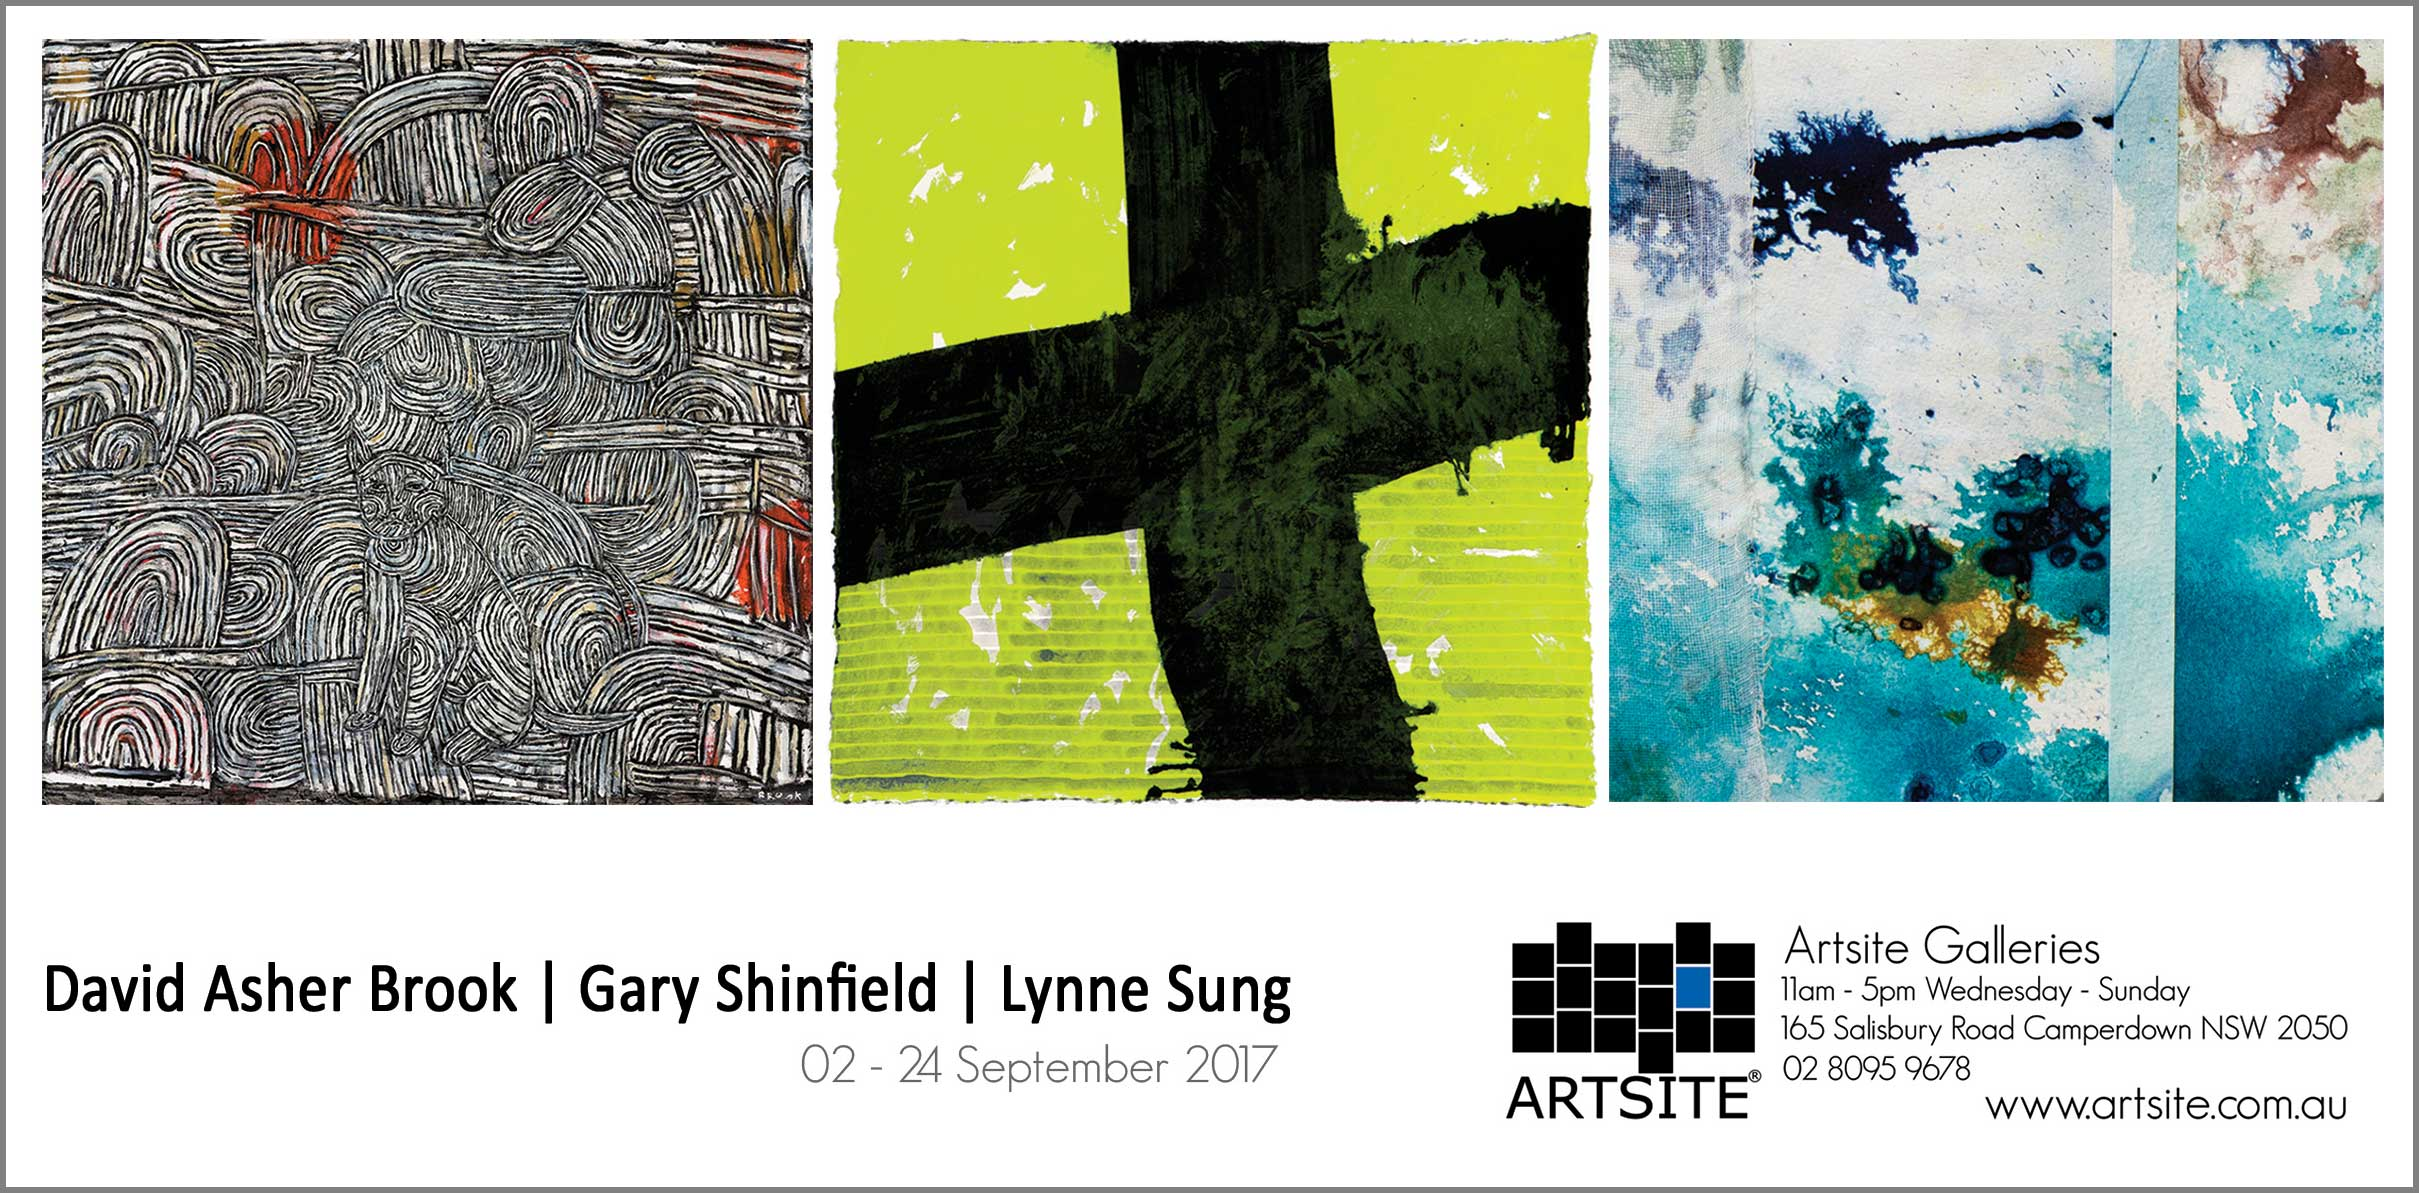 David Asher Brook | Gary Shinfield | Lynne Sung: Group Exhibition Gallery Two, Artsite Gallery 02 - 24 September 2017